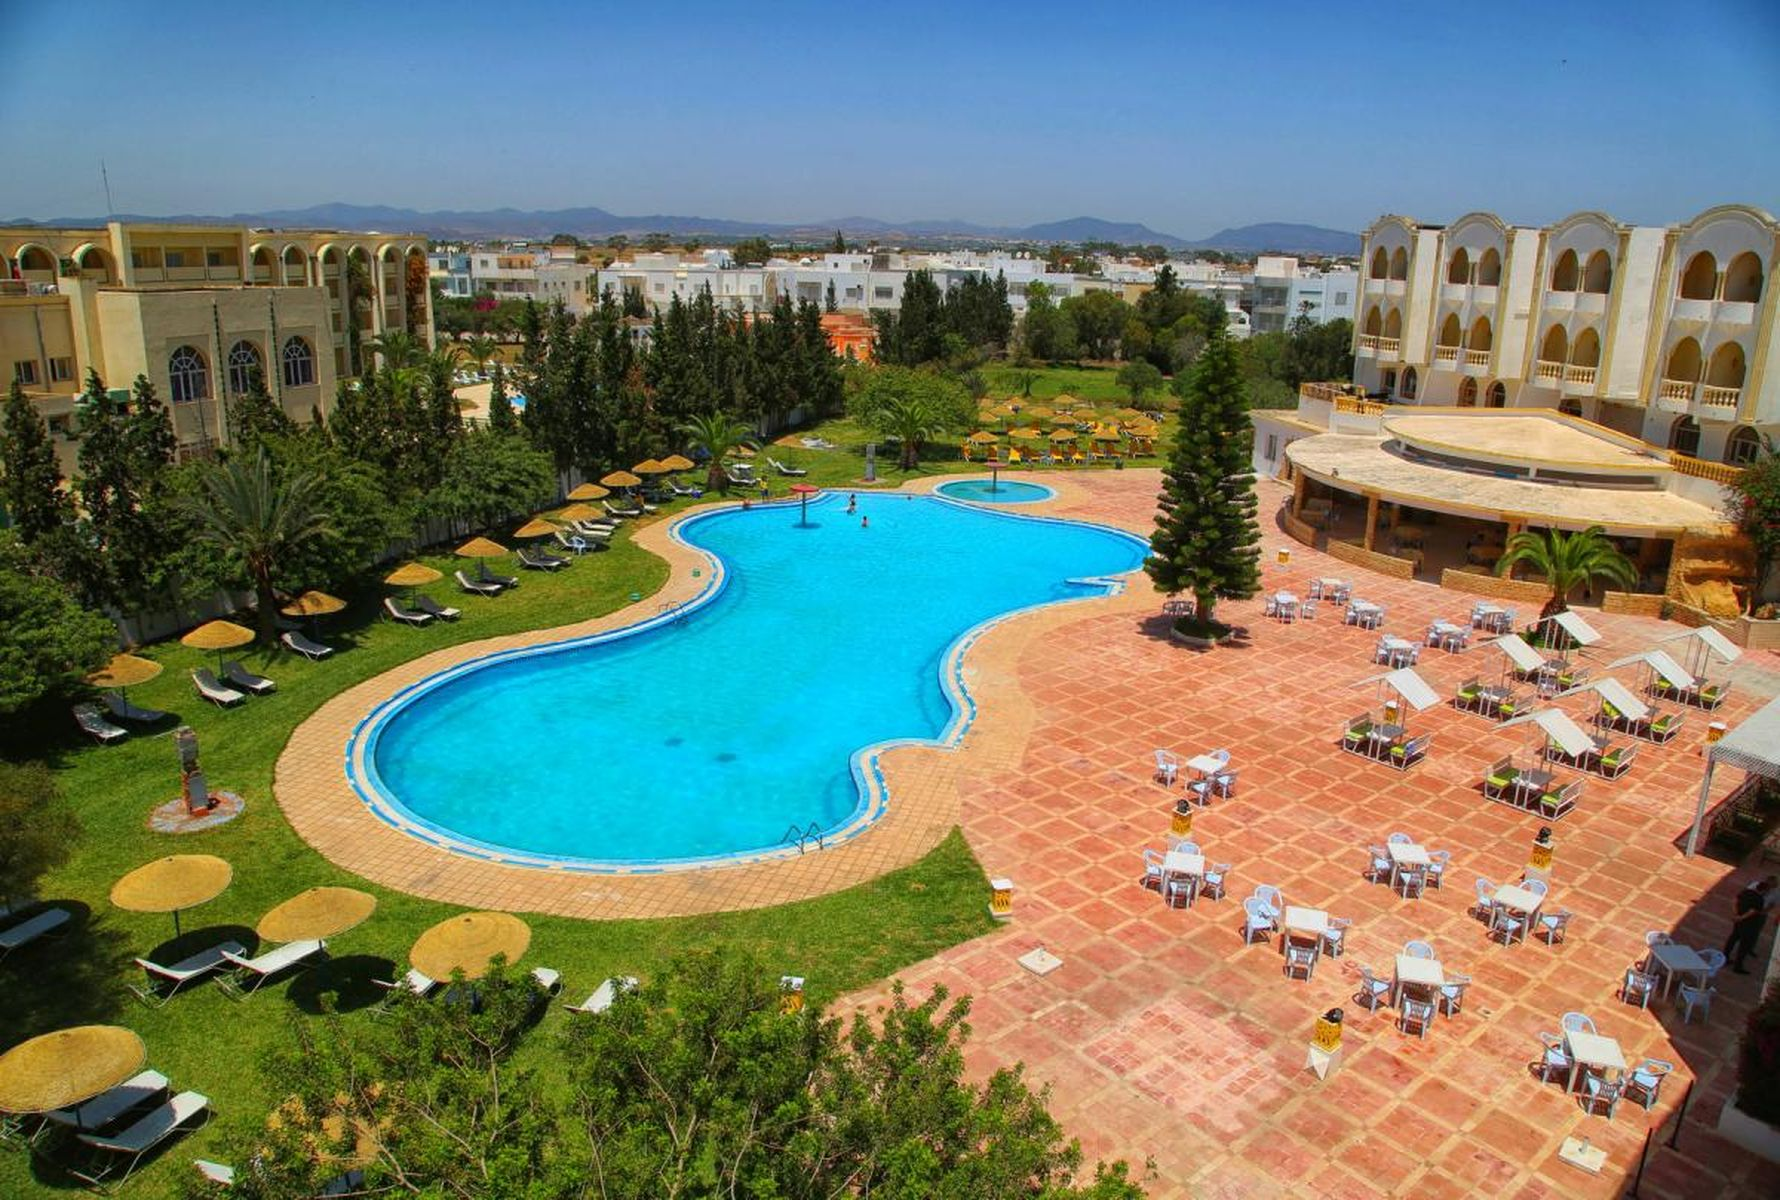 HAMMAMET FAMILY RESORT 3*